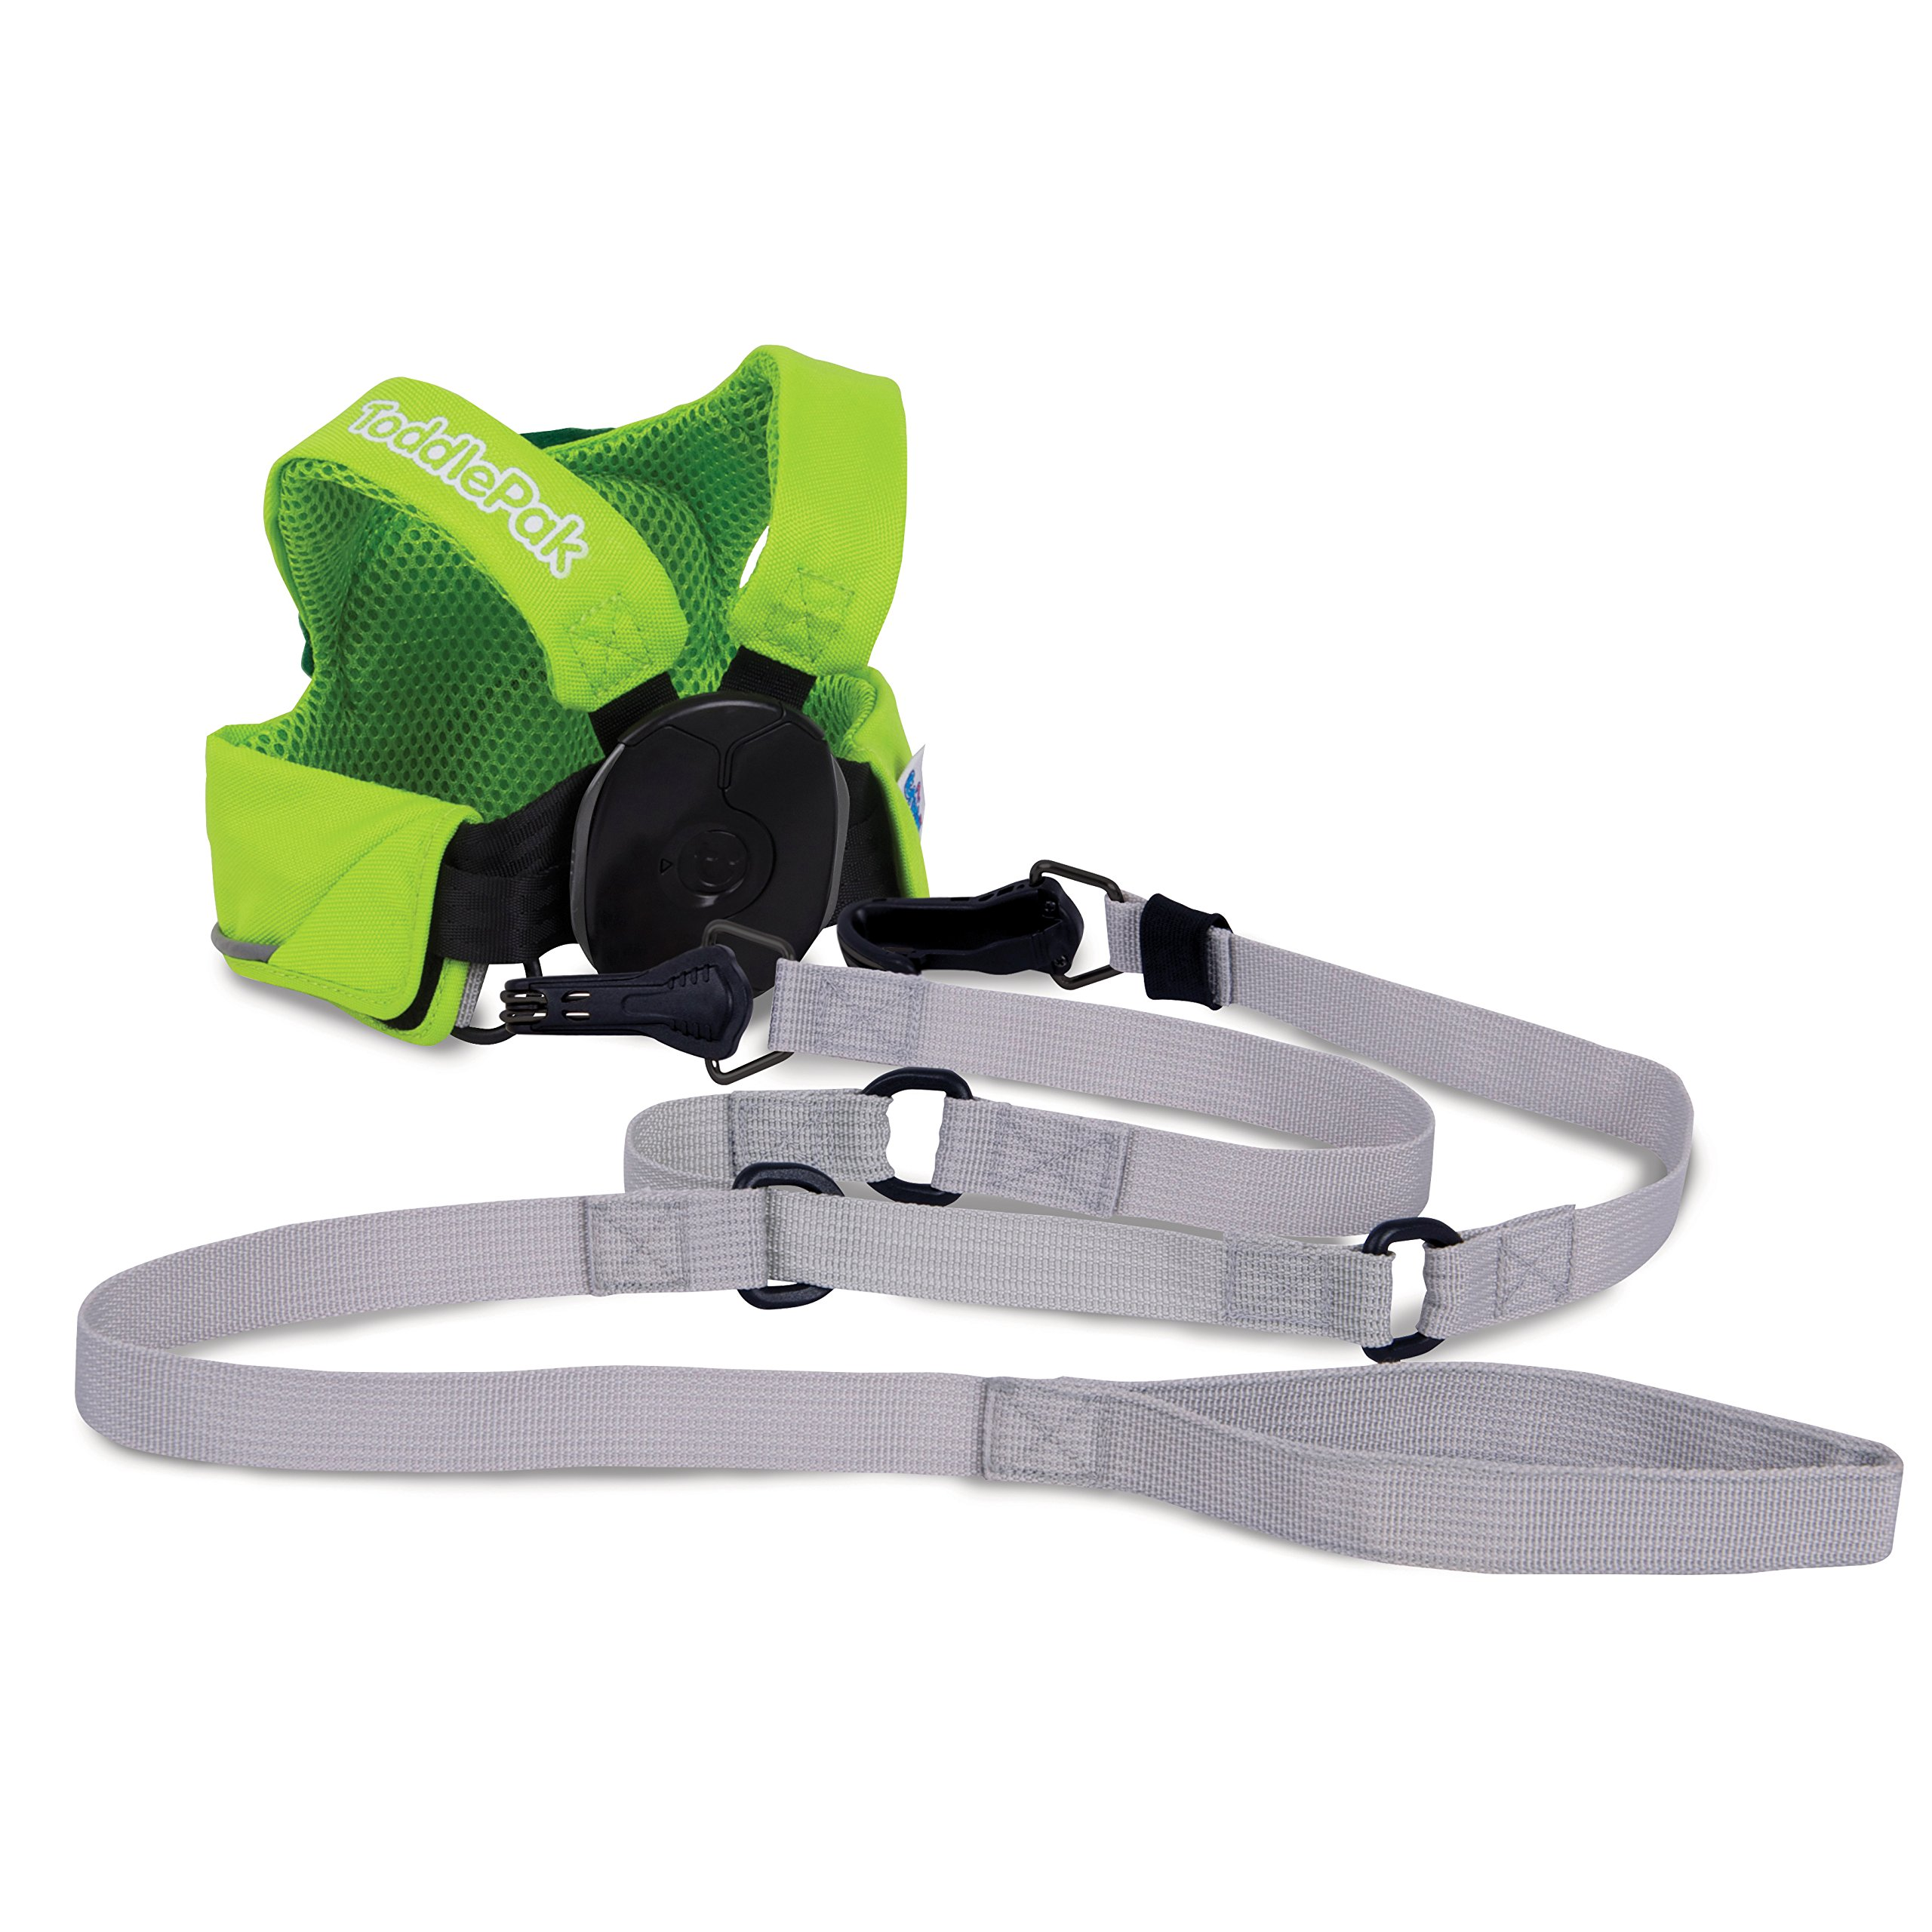 Trunki ToddlePak - Fuss Free Toddler Walking Leash & Kid's Safety Harness – Dudley Dinosaur (Green) by Trunki (Image #2)